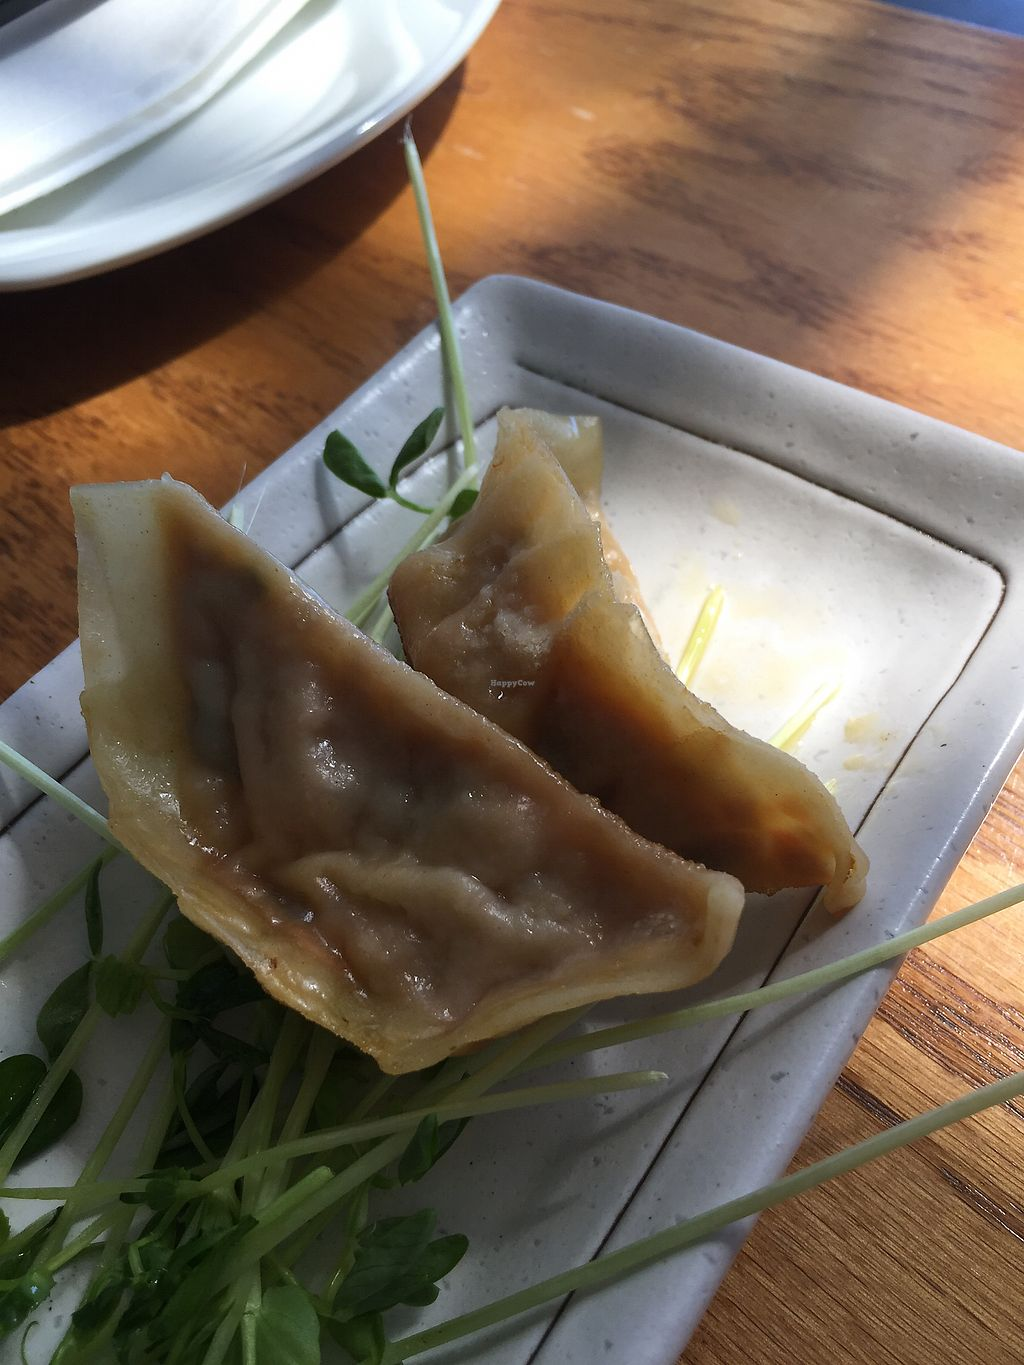 """Photo of Wild Rice  by <a href=""""/members/profile/TLC%20Veg."""">TLC Veg.</a> <br/>yummy potstickers <br/> August 26, 2017  - <a href='/contact/abuse/image/33372/297638'>Report</a>"""